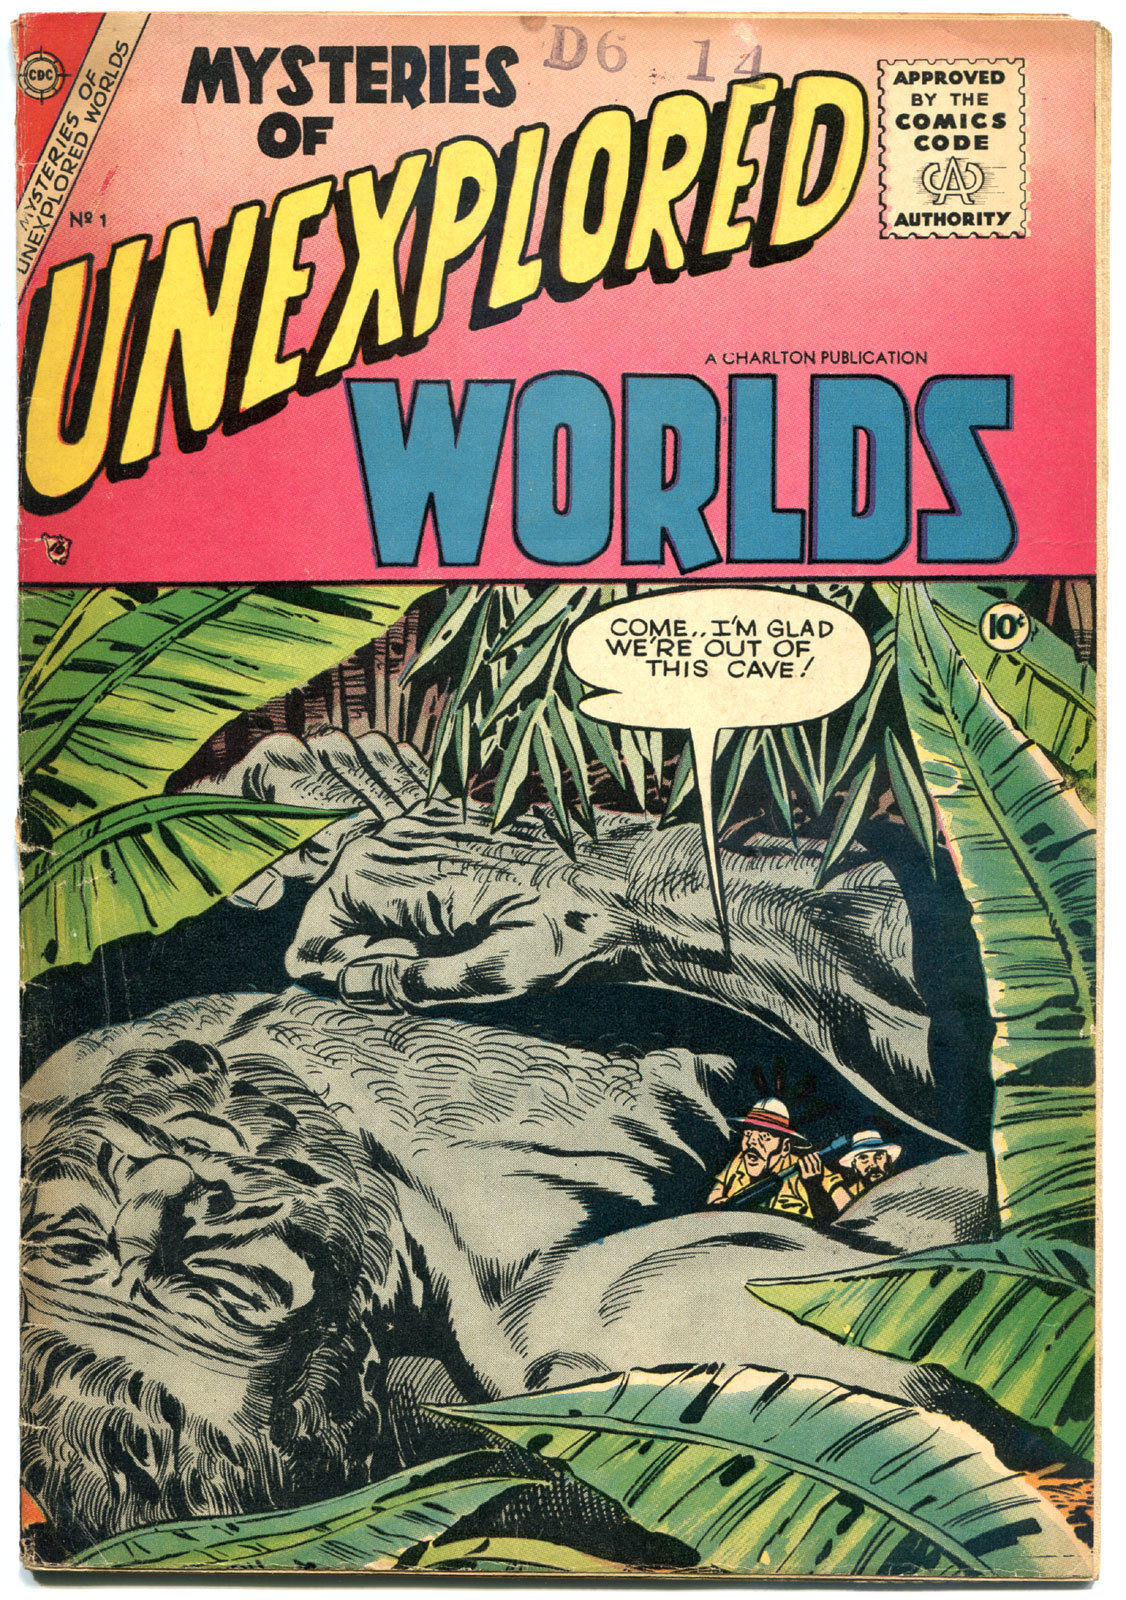 MYSTERIES of UNEXPLORED WORLDS #1, FN-, Charlton, 1956, Golden Age